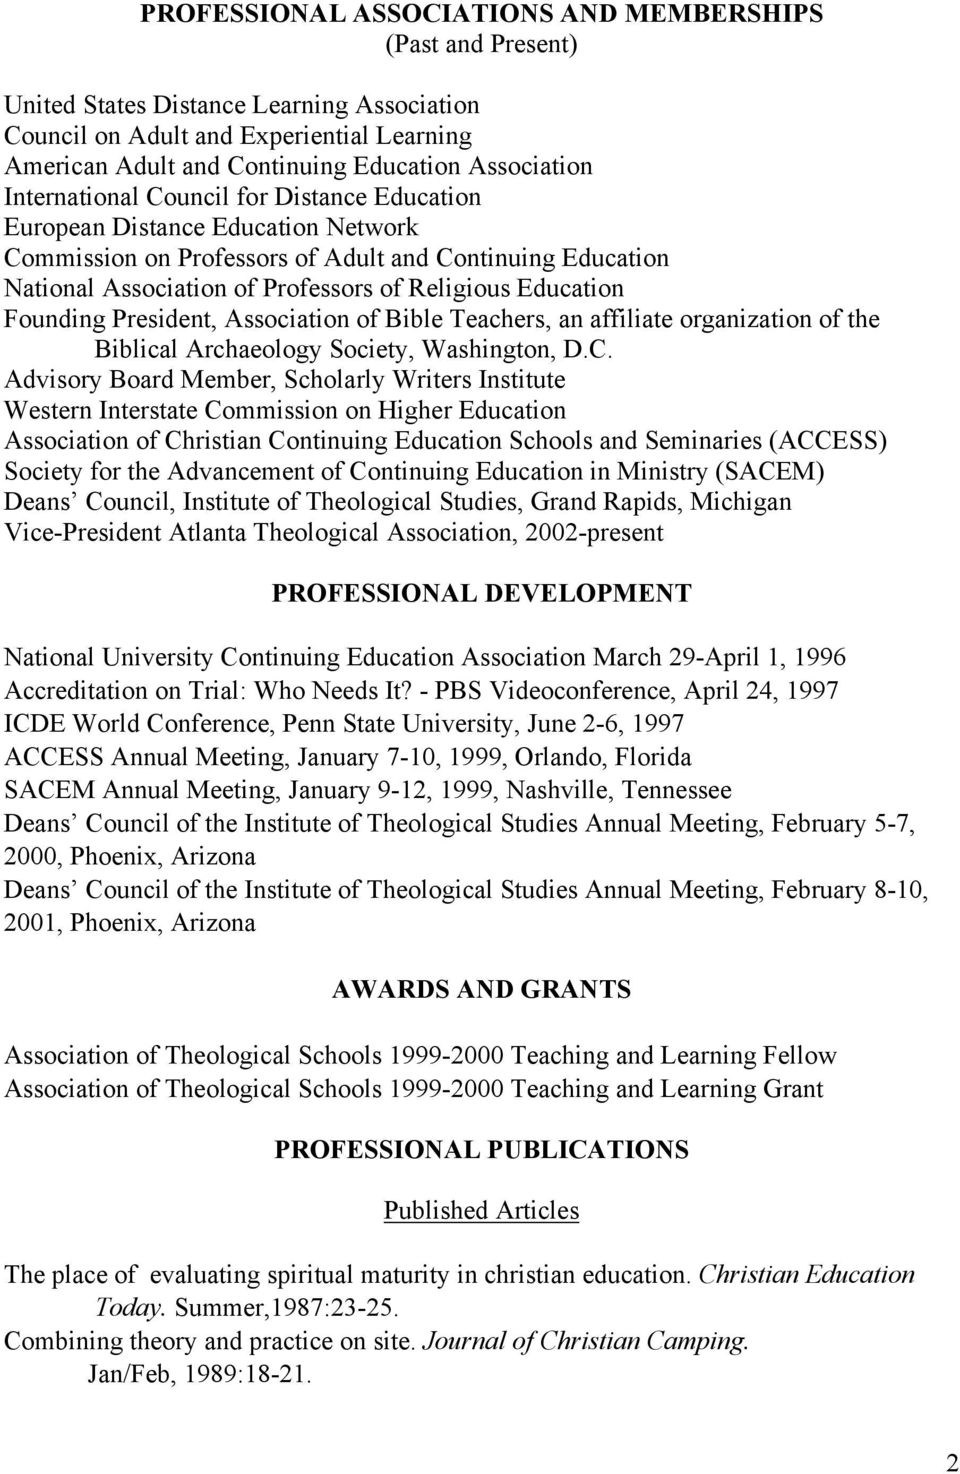 Founding President, Association of Bible Teachers, an affiliate organization of the Biblical Archaeology Society, Washington, D.C.